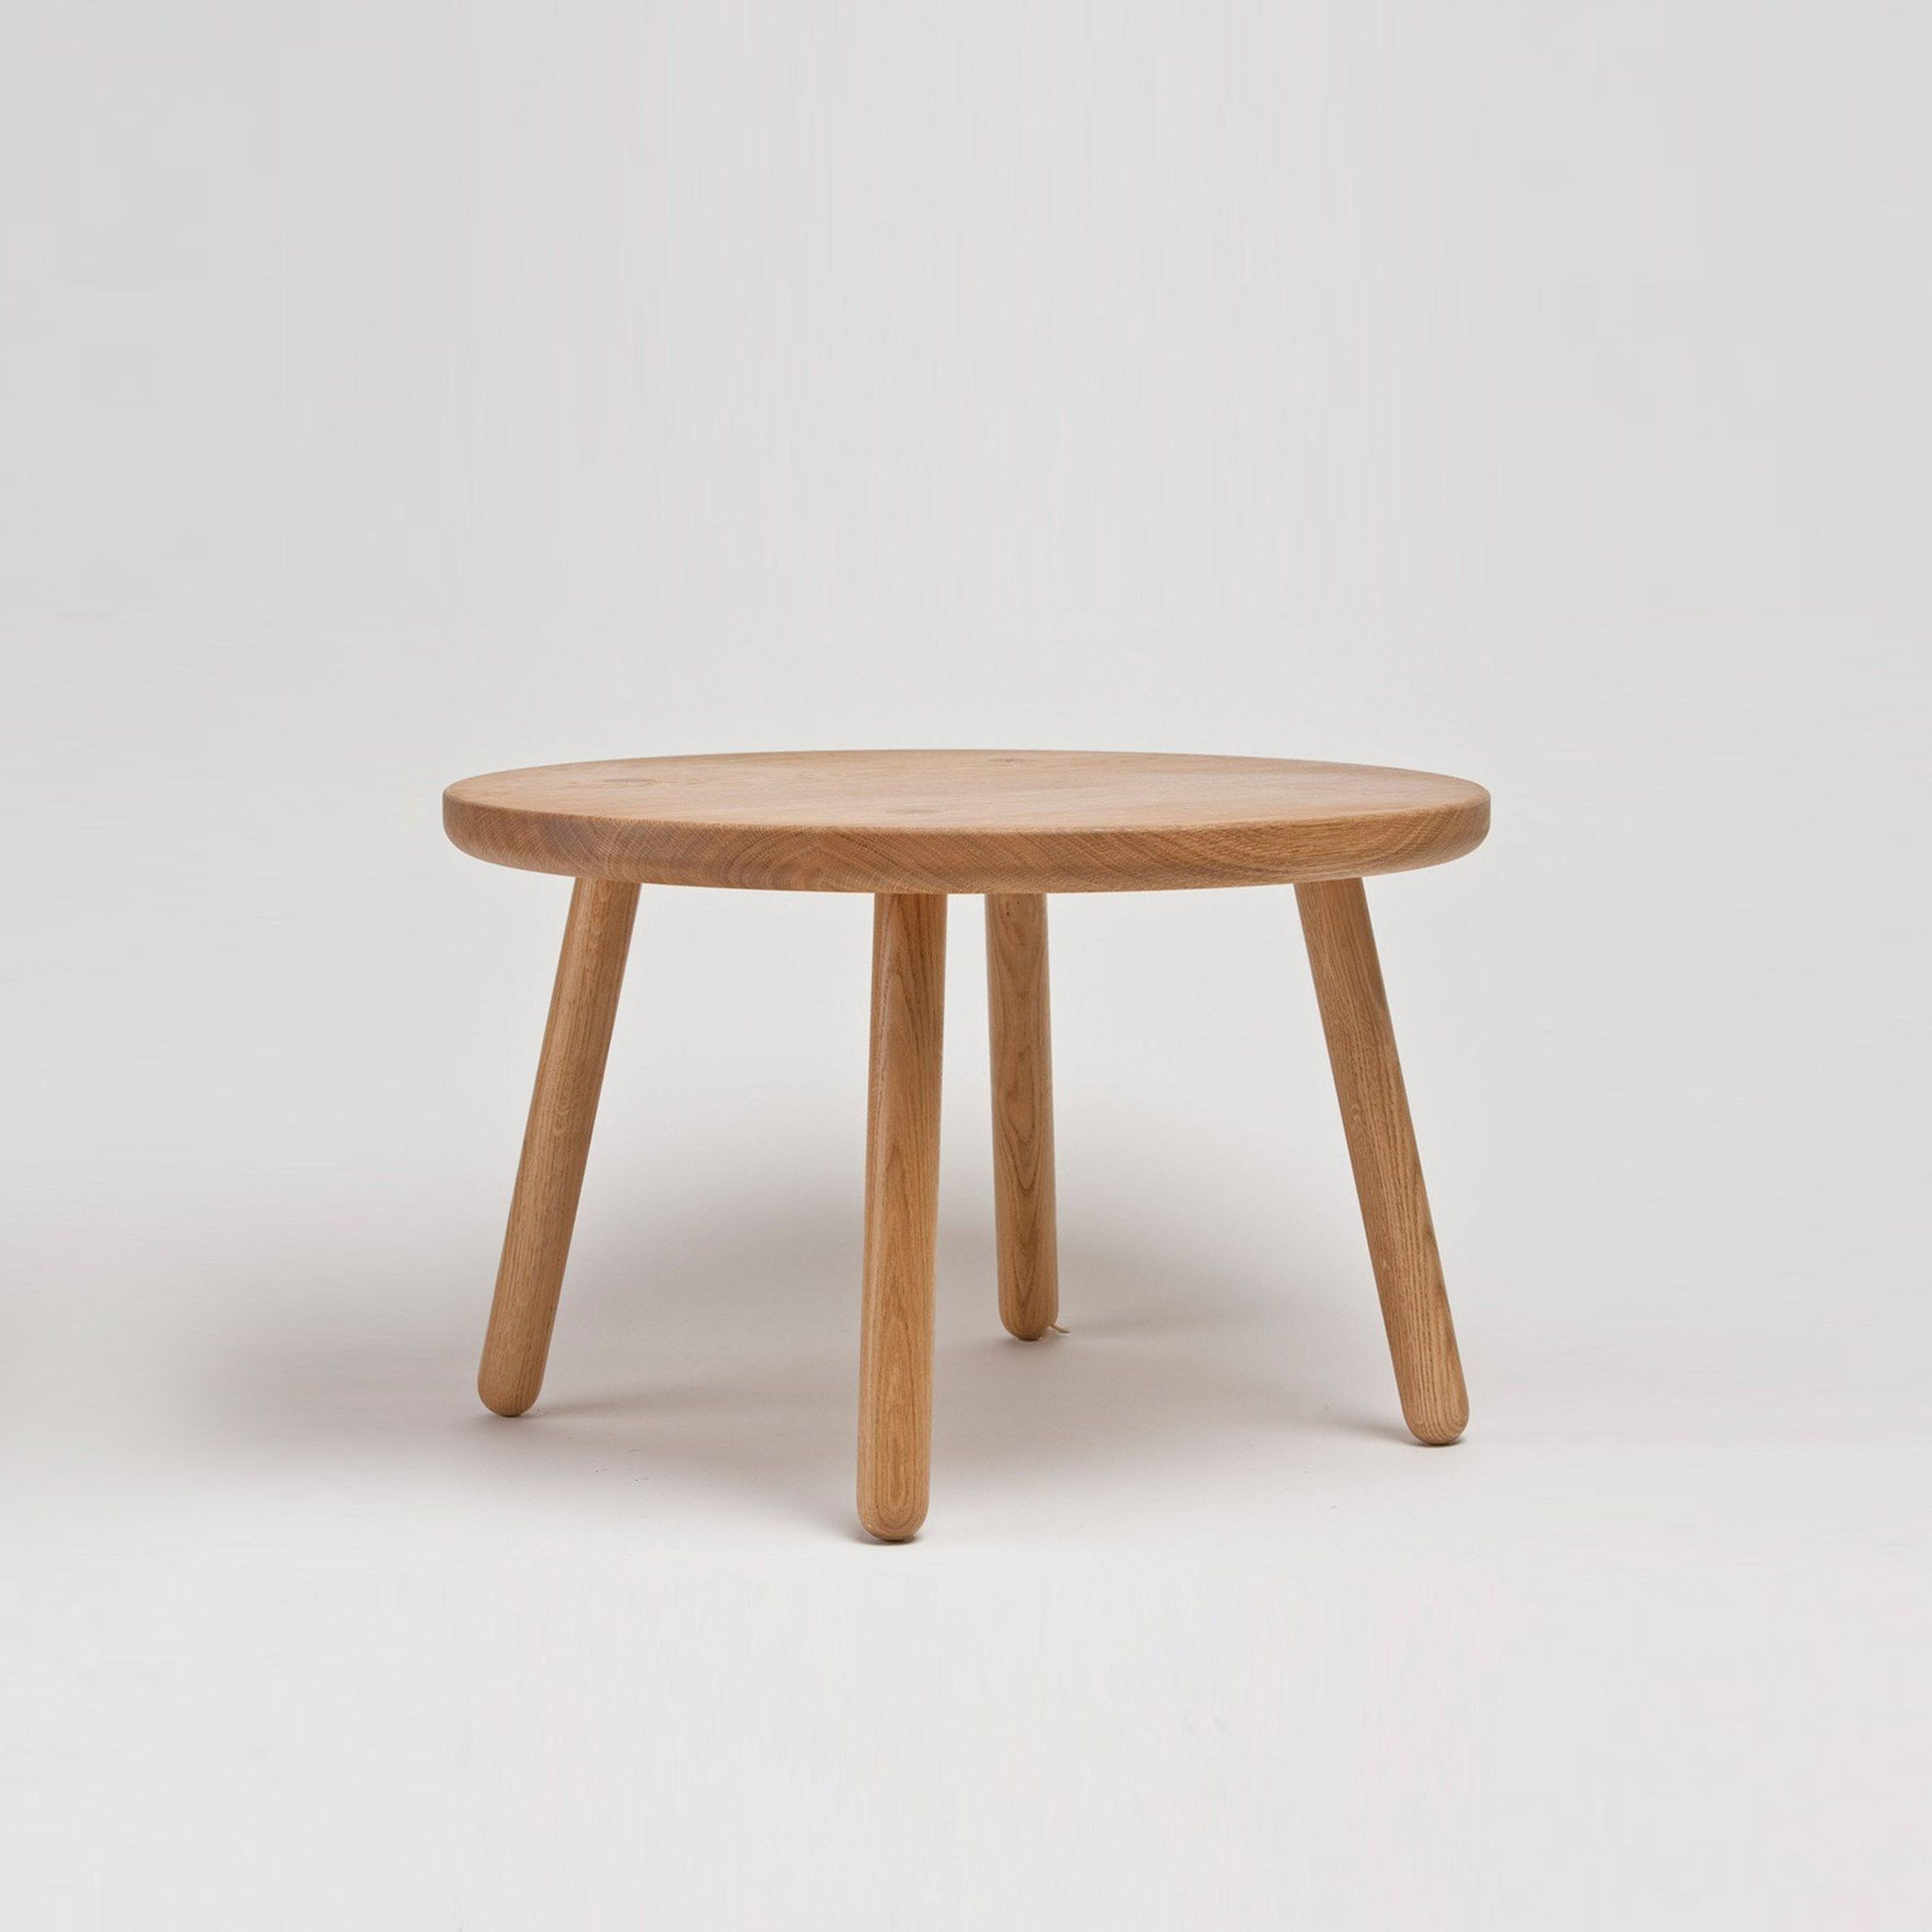 Coffee table one round timber planks natural structures and coffee